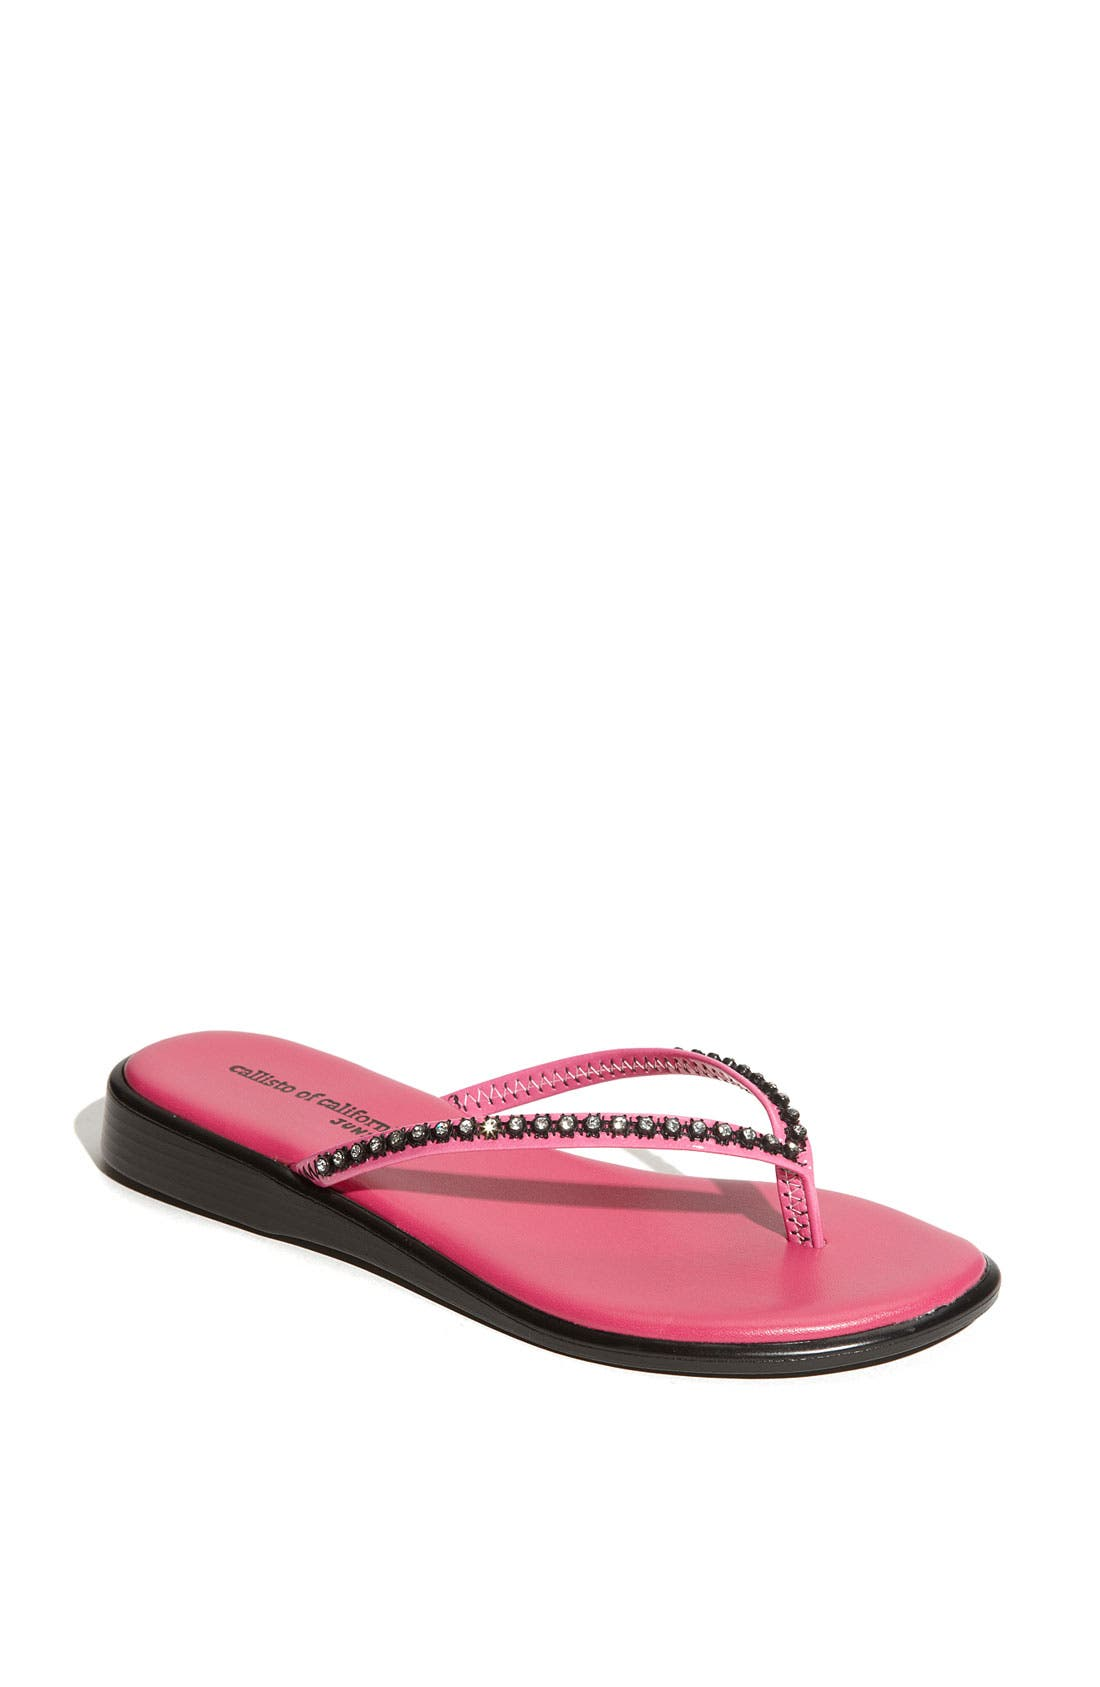 Alternate Image 1 Selected - Callisto 'Girly' Flip Flop (Toddler, Little Kid & Big Kid)